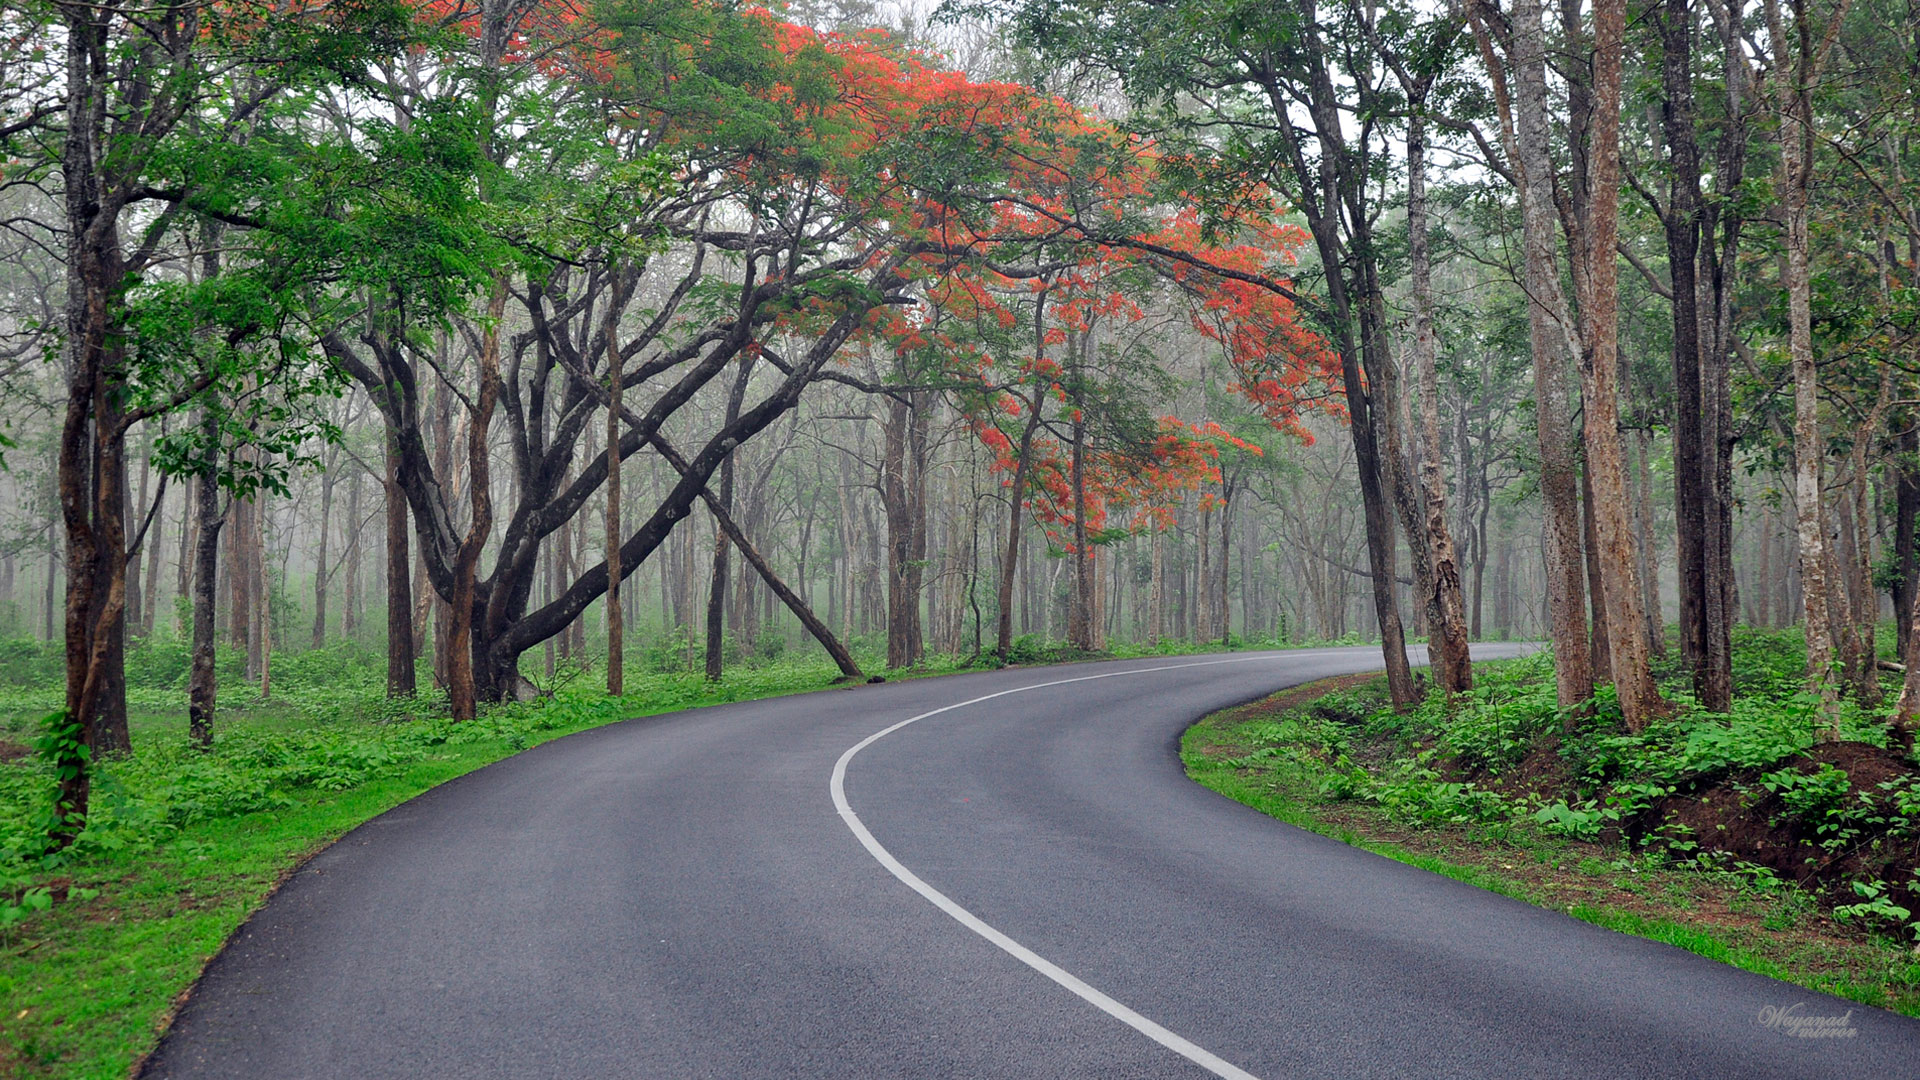 Rain Fall Hd Wallpaper We Are The Best Mysore Ooty Tour Provider In Kolkata Also